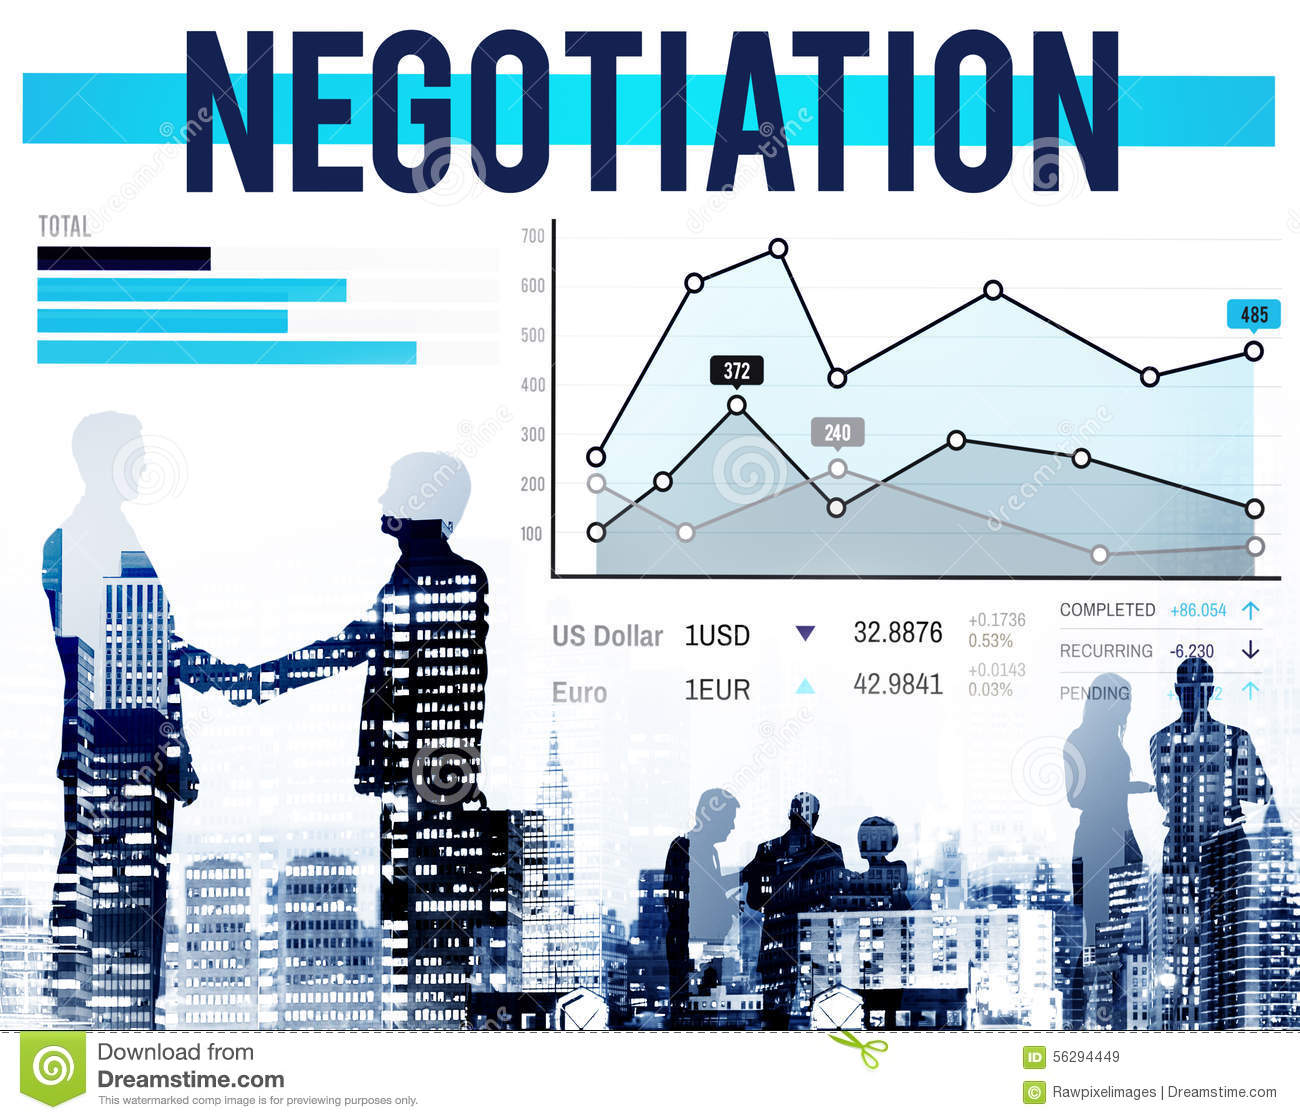 concepts of negotiation My mindset on negotiation has completely changed like most people, i was  initially intimidated by the concept of negotiation now i am.